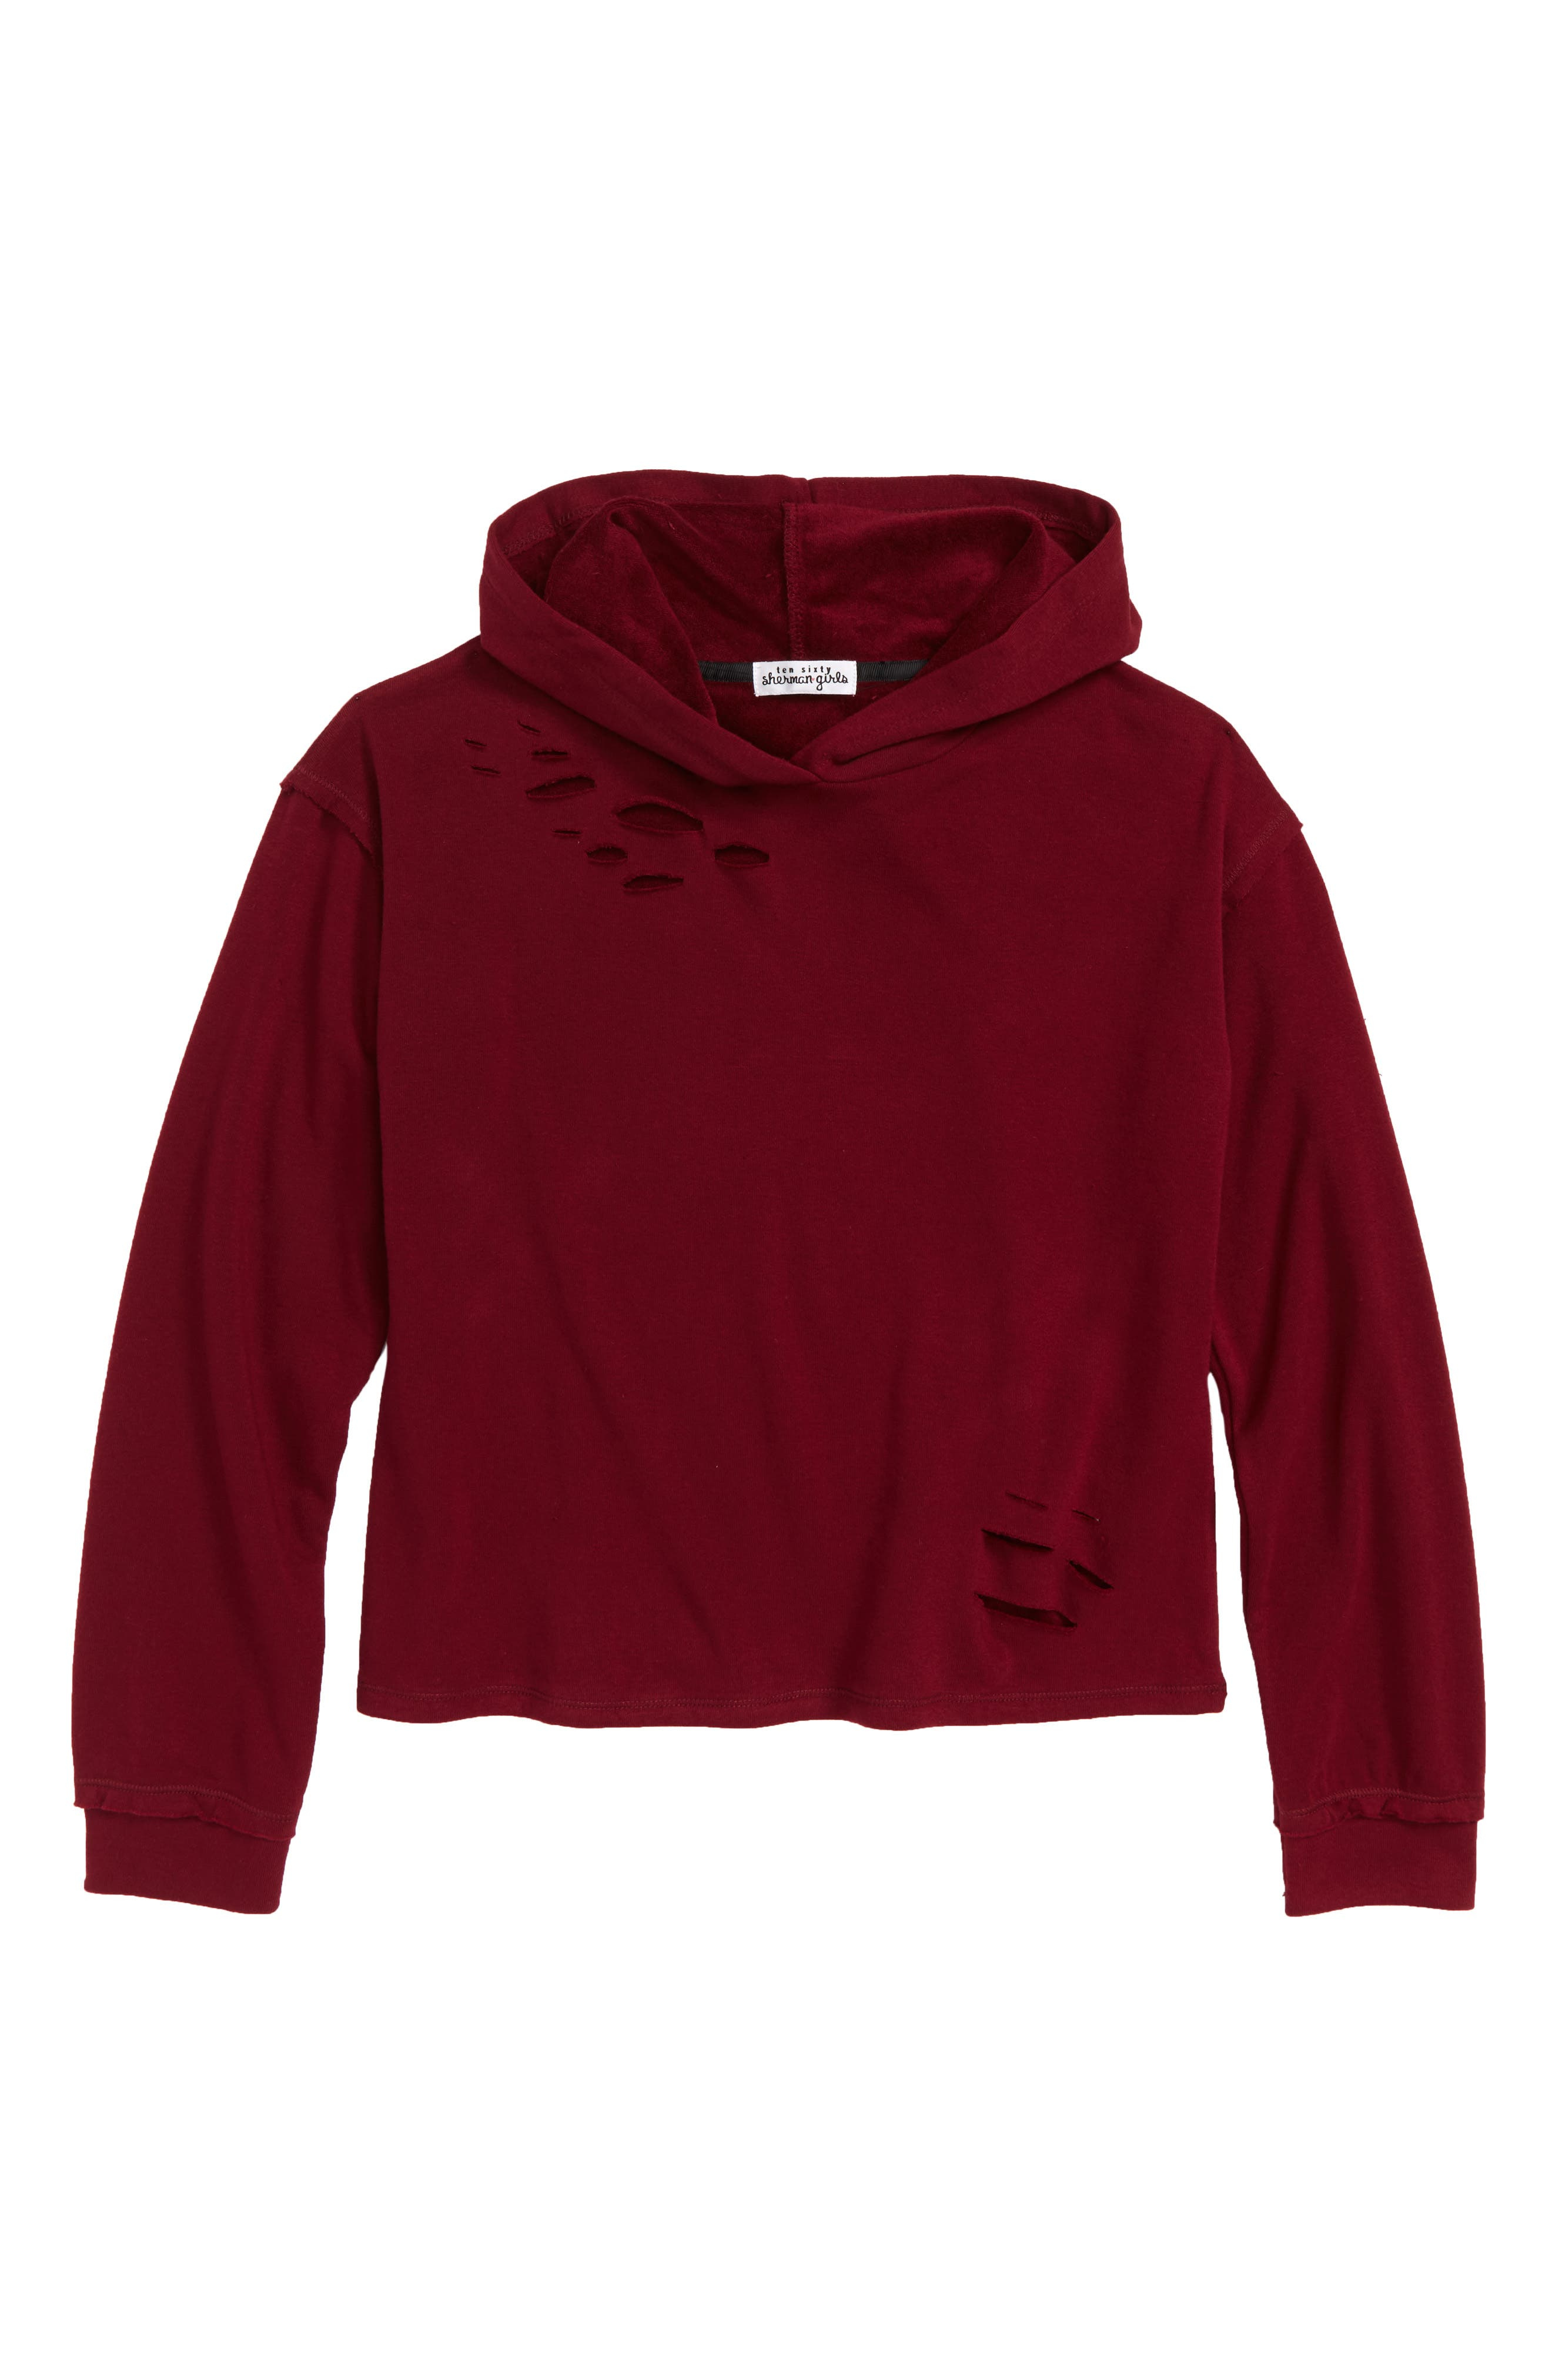 Destructed Hoodie,                             Main thumbnail 1, color,                             Burgundy